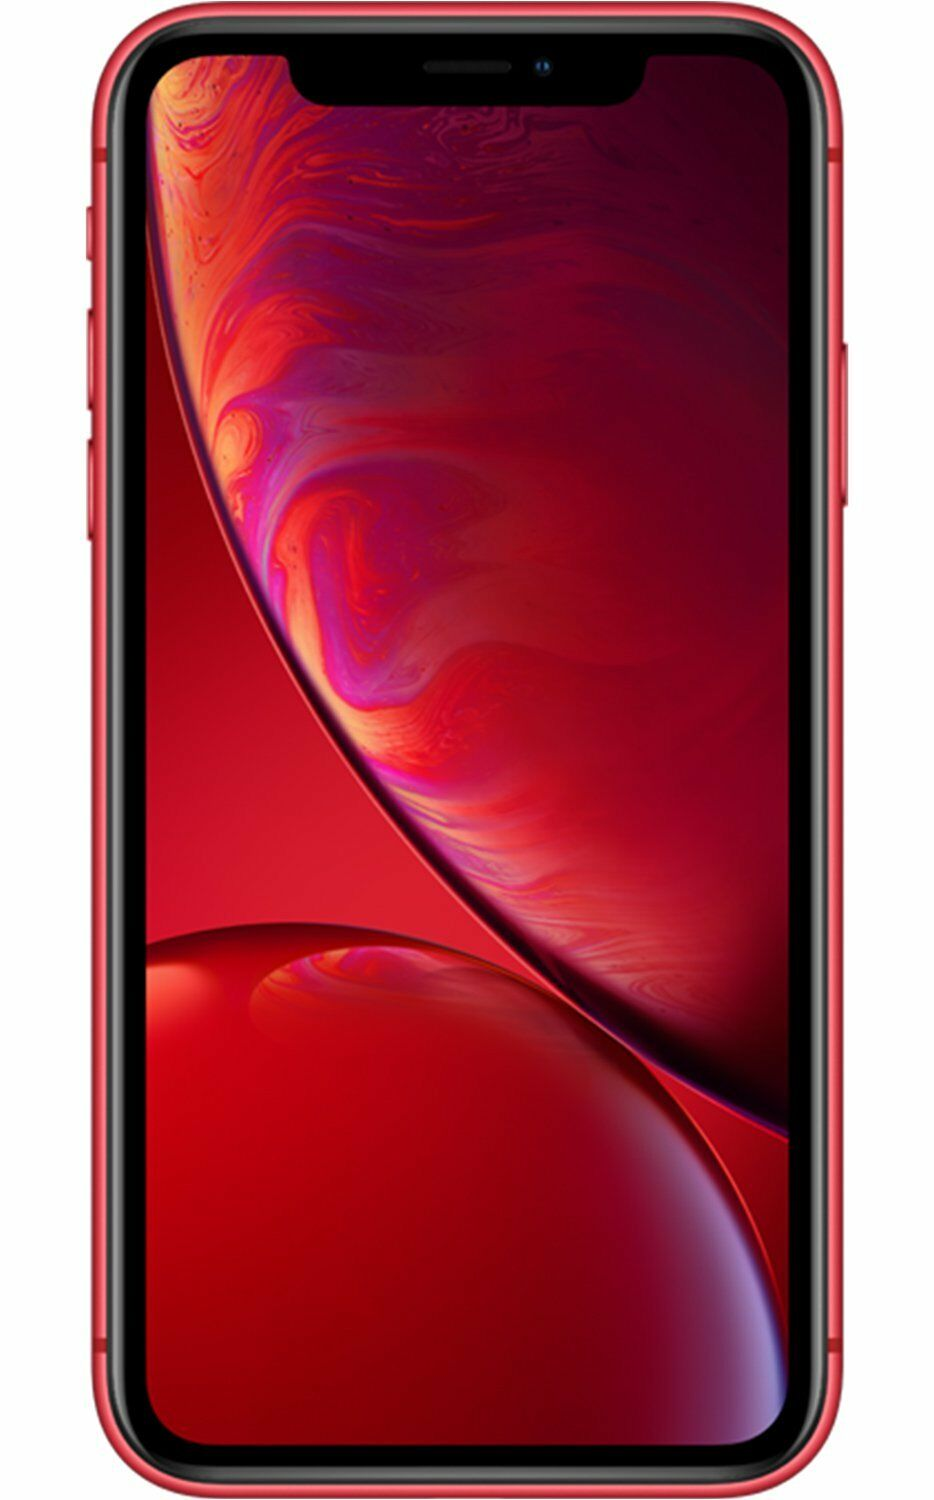 Apple-iPhone-XR-64GB-Factory-Unlocked-Smartphone-4G-LTE-iOS-Smartphone thumbnail 12